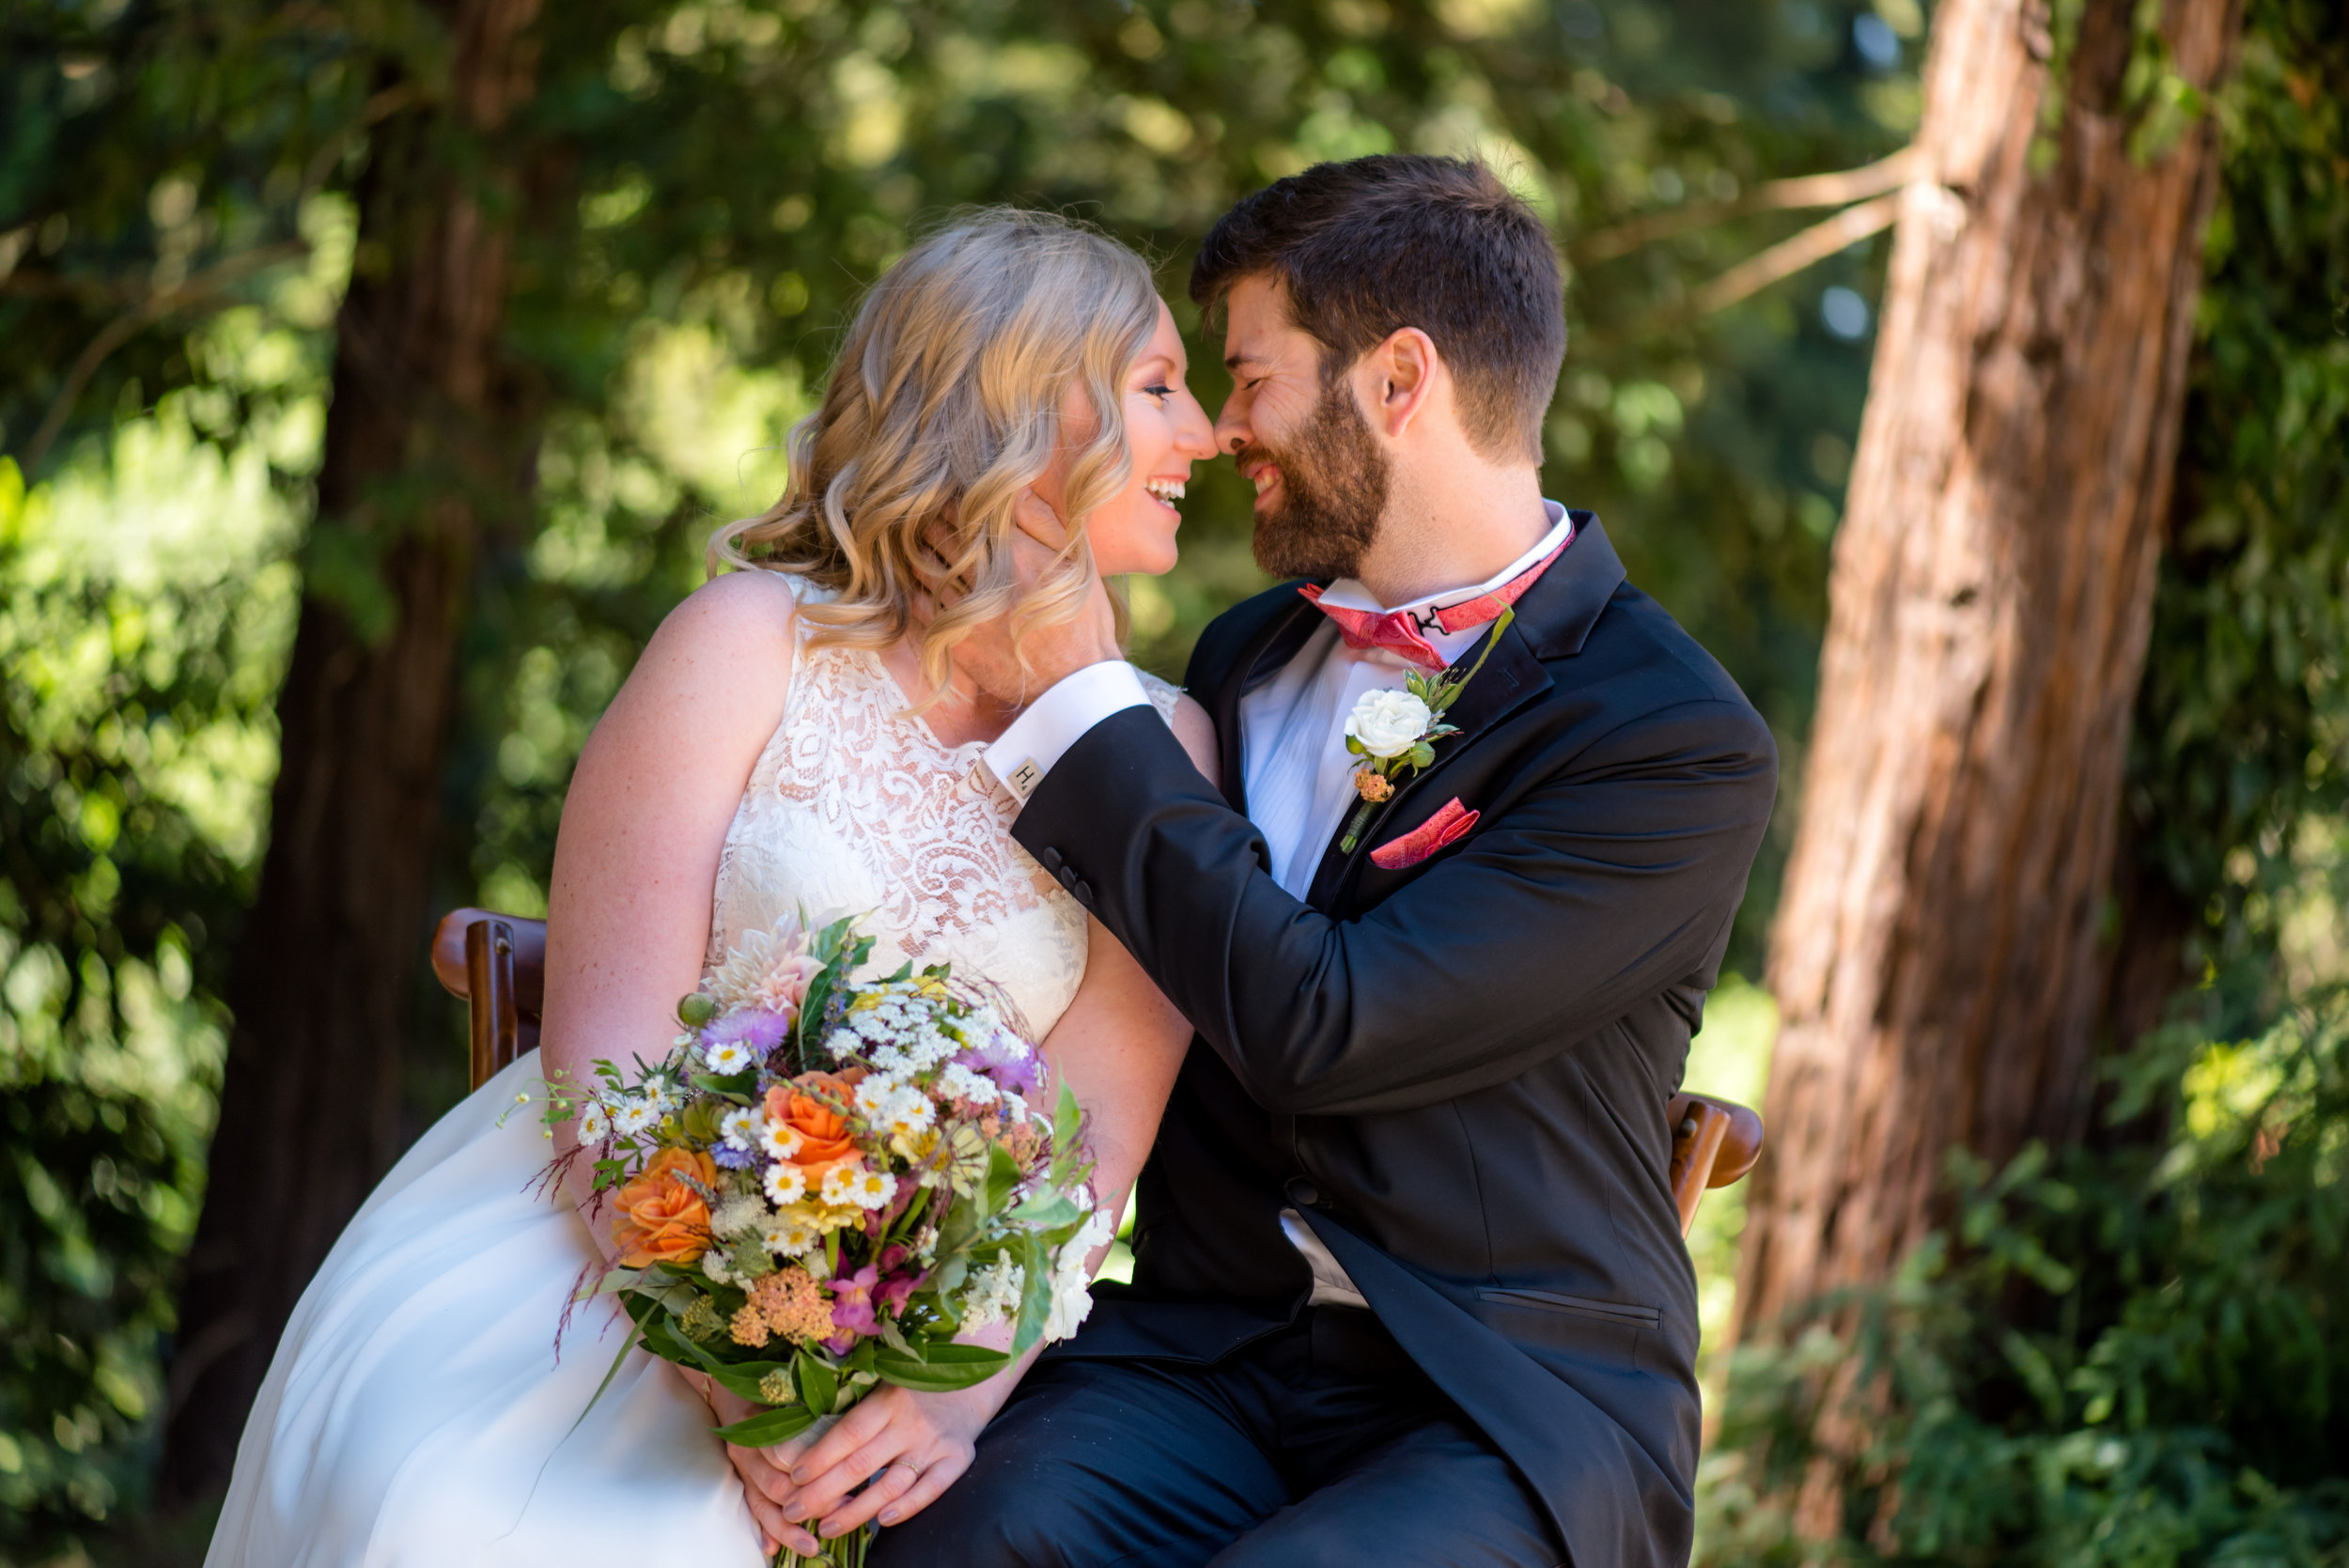 suz-bryan-009-mountain-terrace-woodside-wedding-photographer-katherine-nicole-photography.JPG